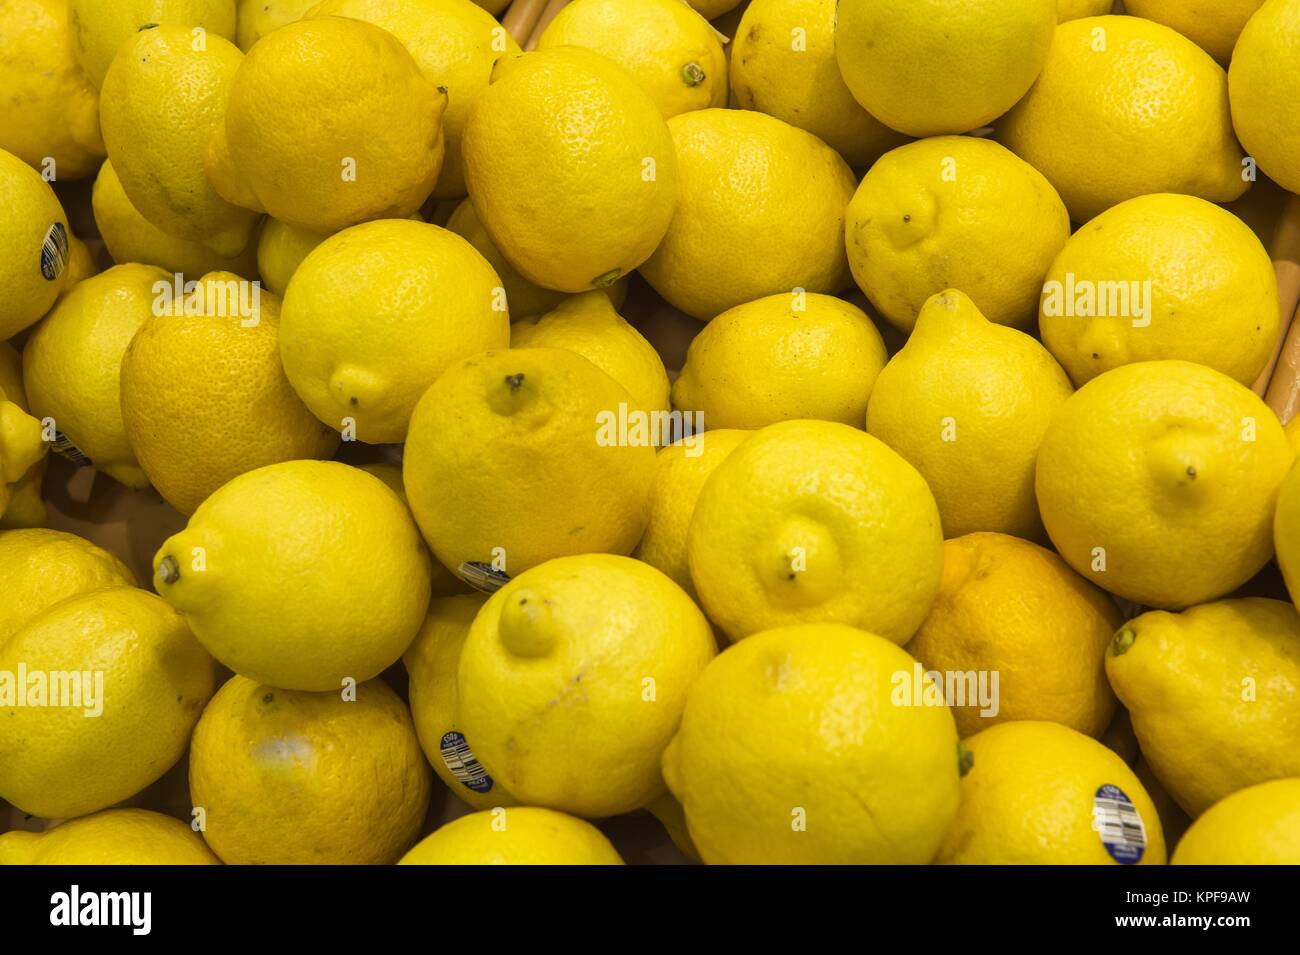 fresh lemons from market display shelves real with flaws and bru - Stock Image